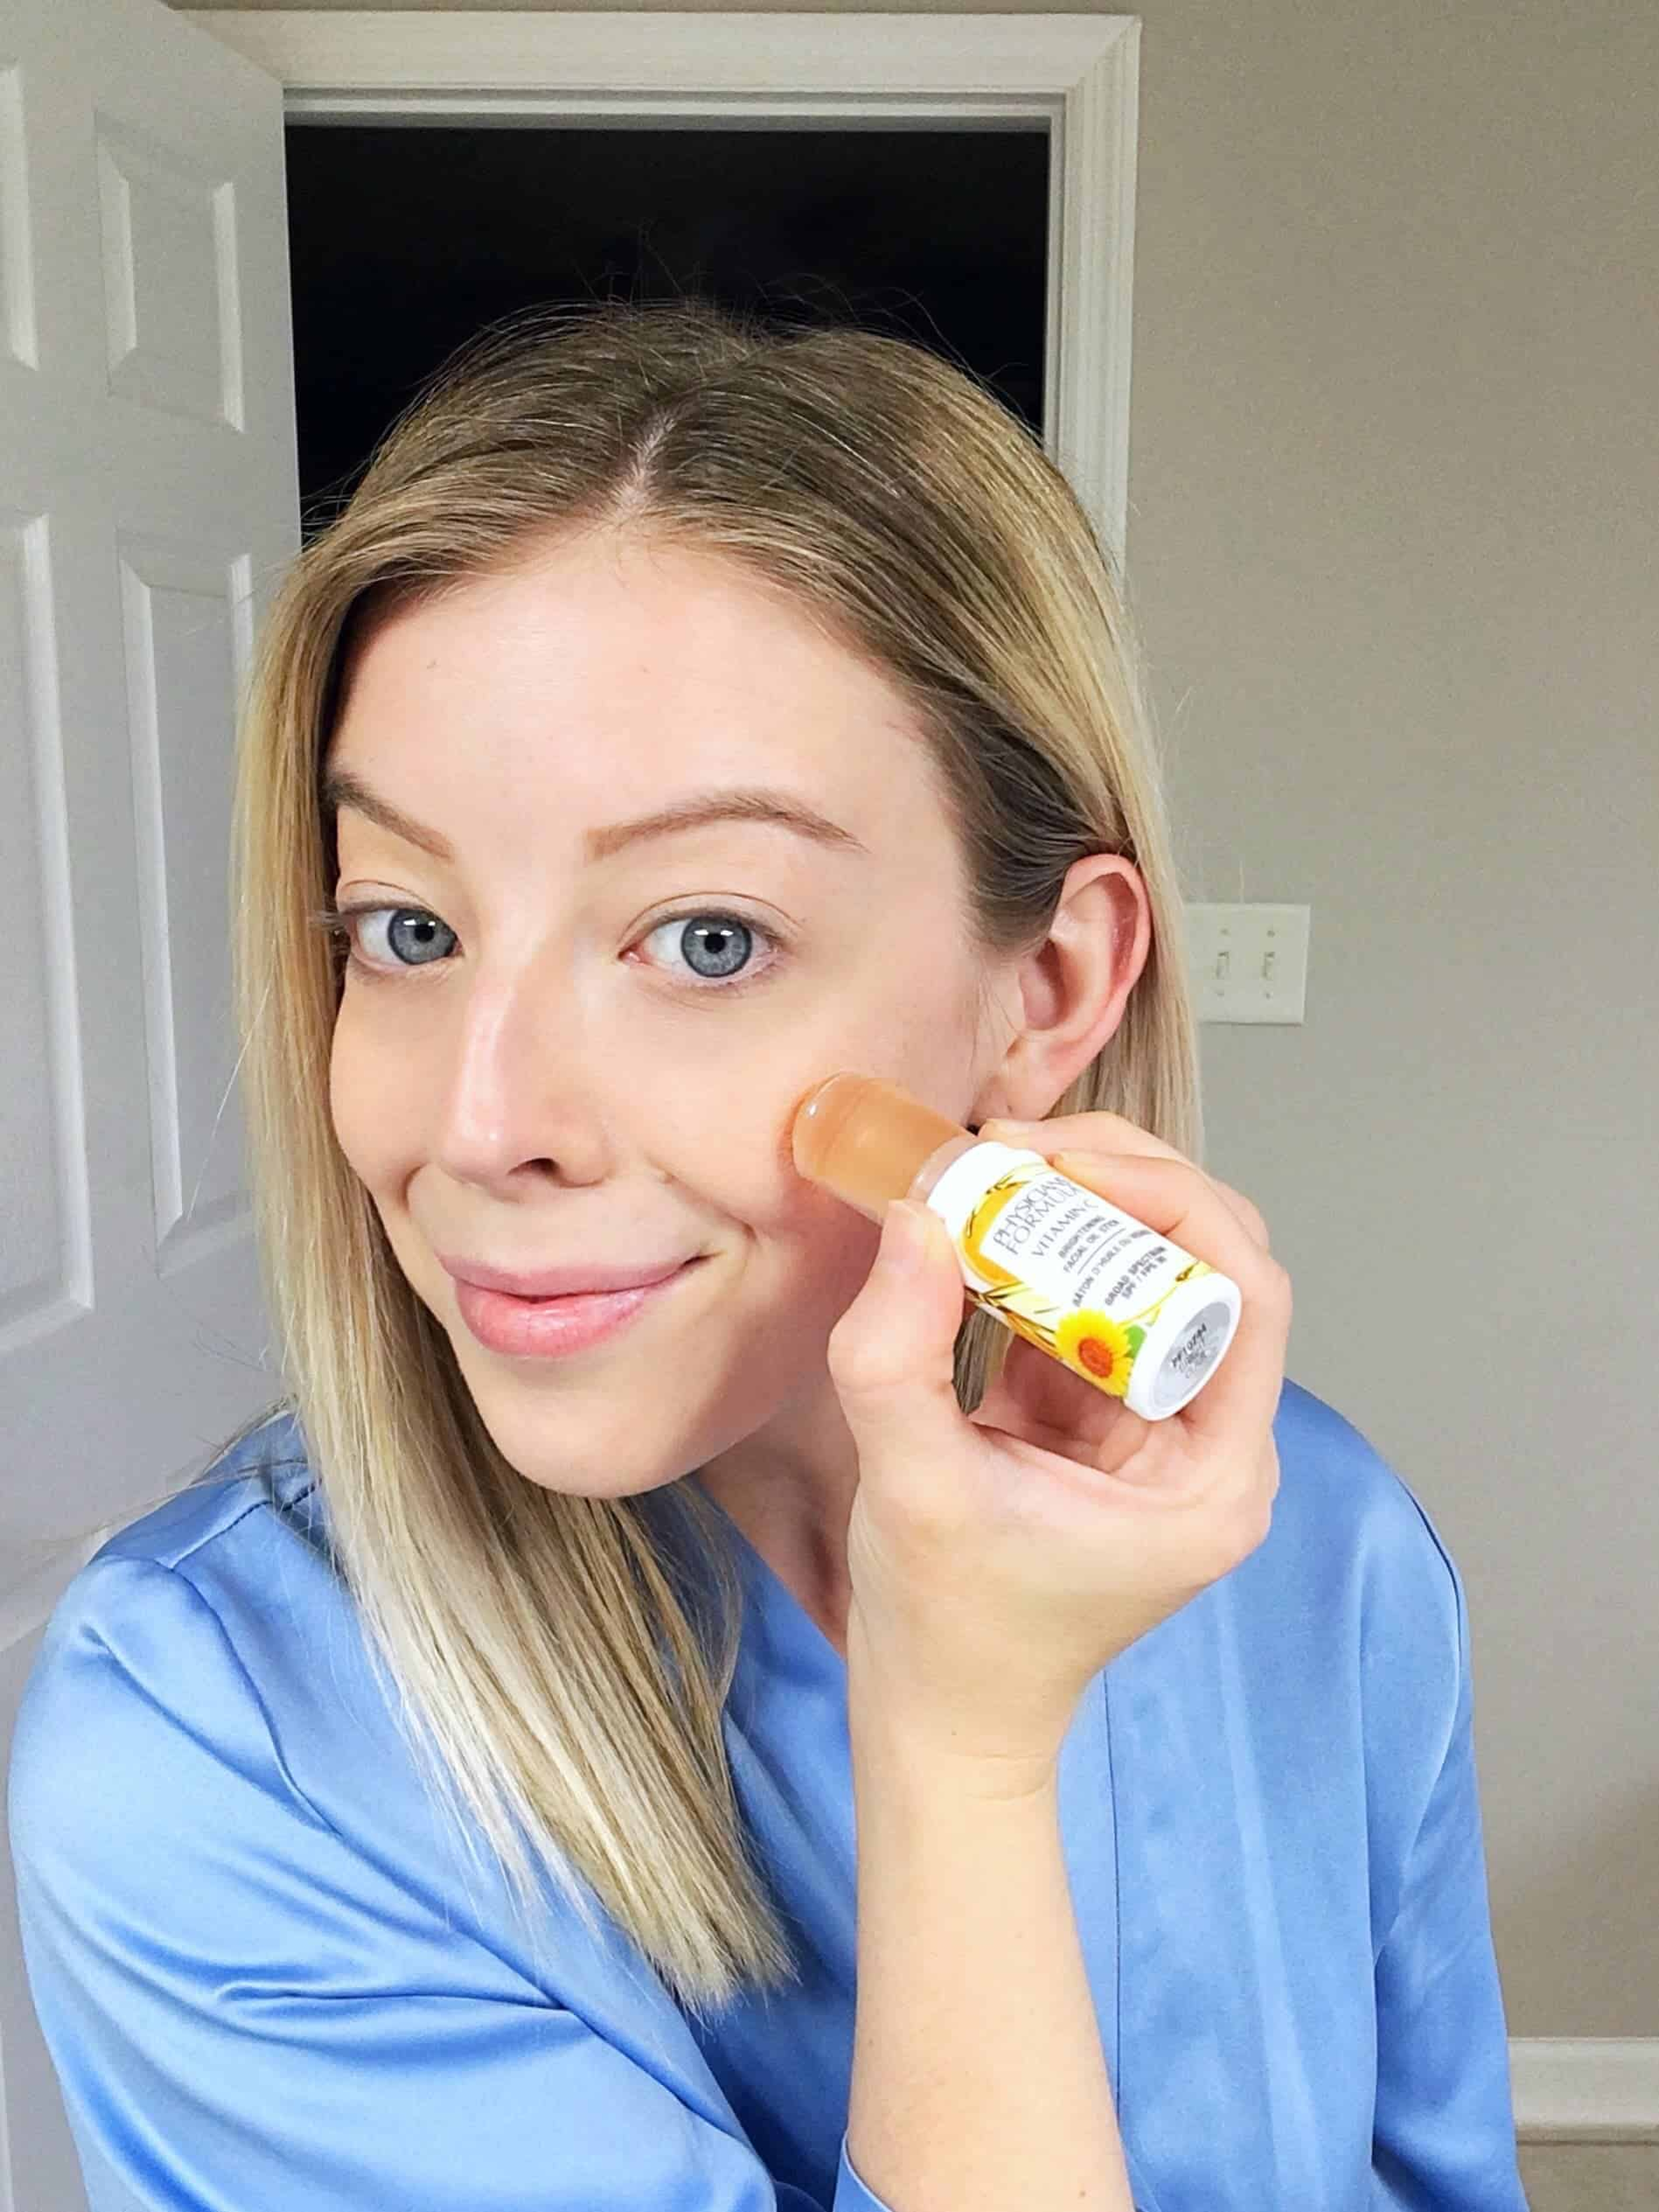 Getting beautiful, glowing skin at home is easier than you think! Today I'm sharing 6 tips for healthy glowing skin and my favorite products for brightening, moisturizing, and enhancing the skin's natural beauty and glow.